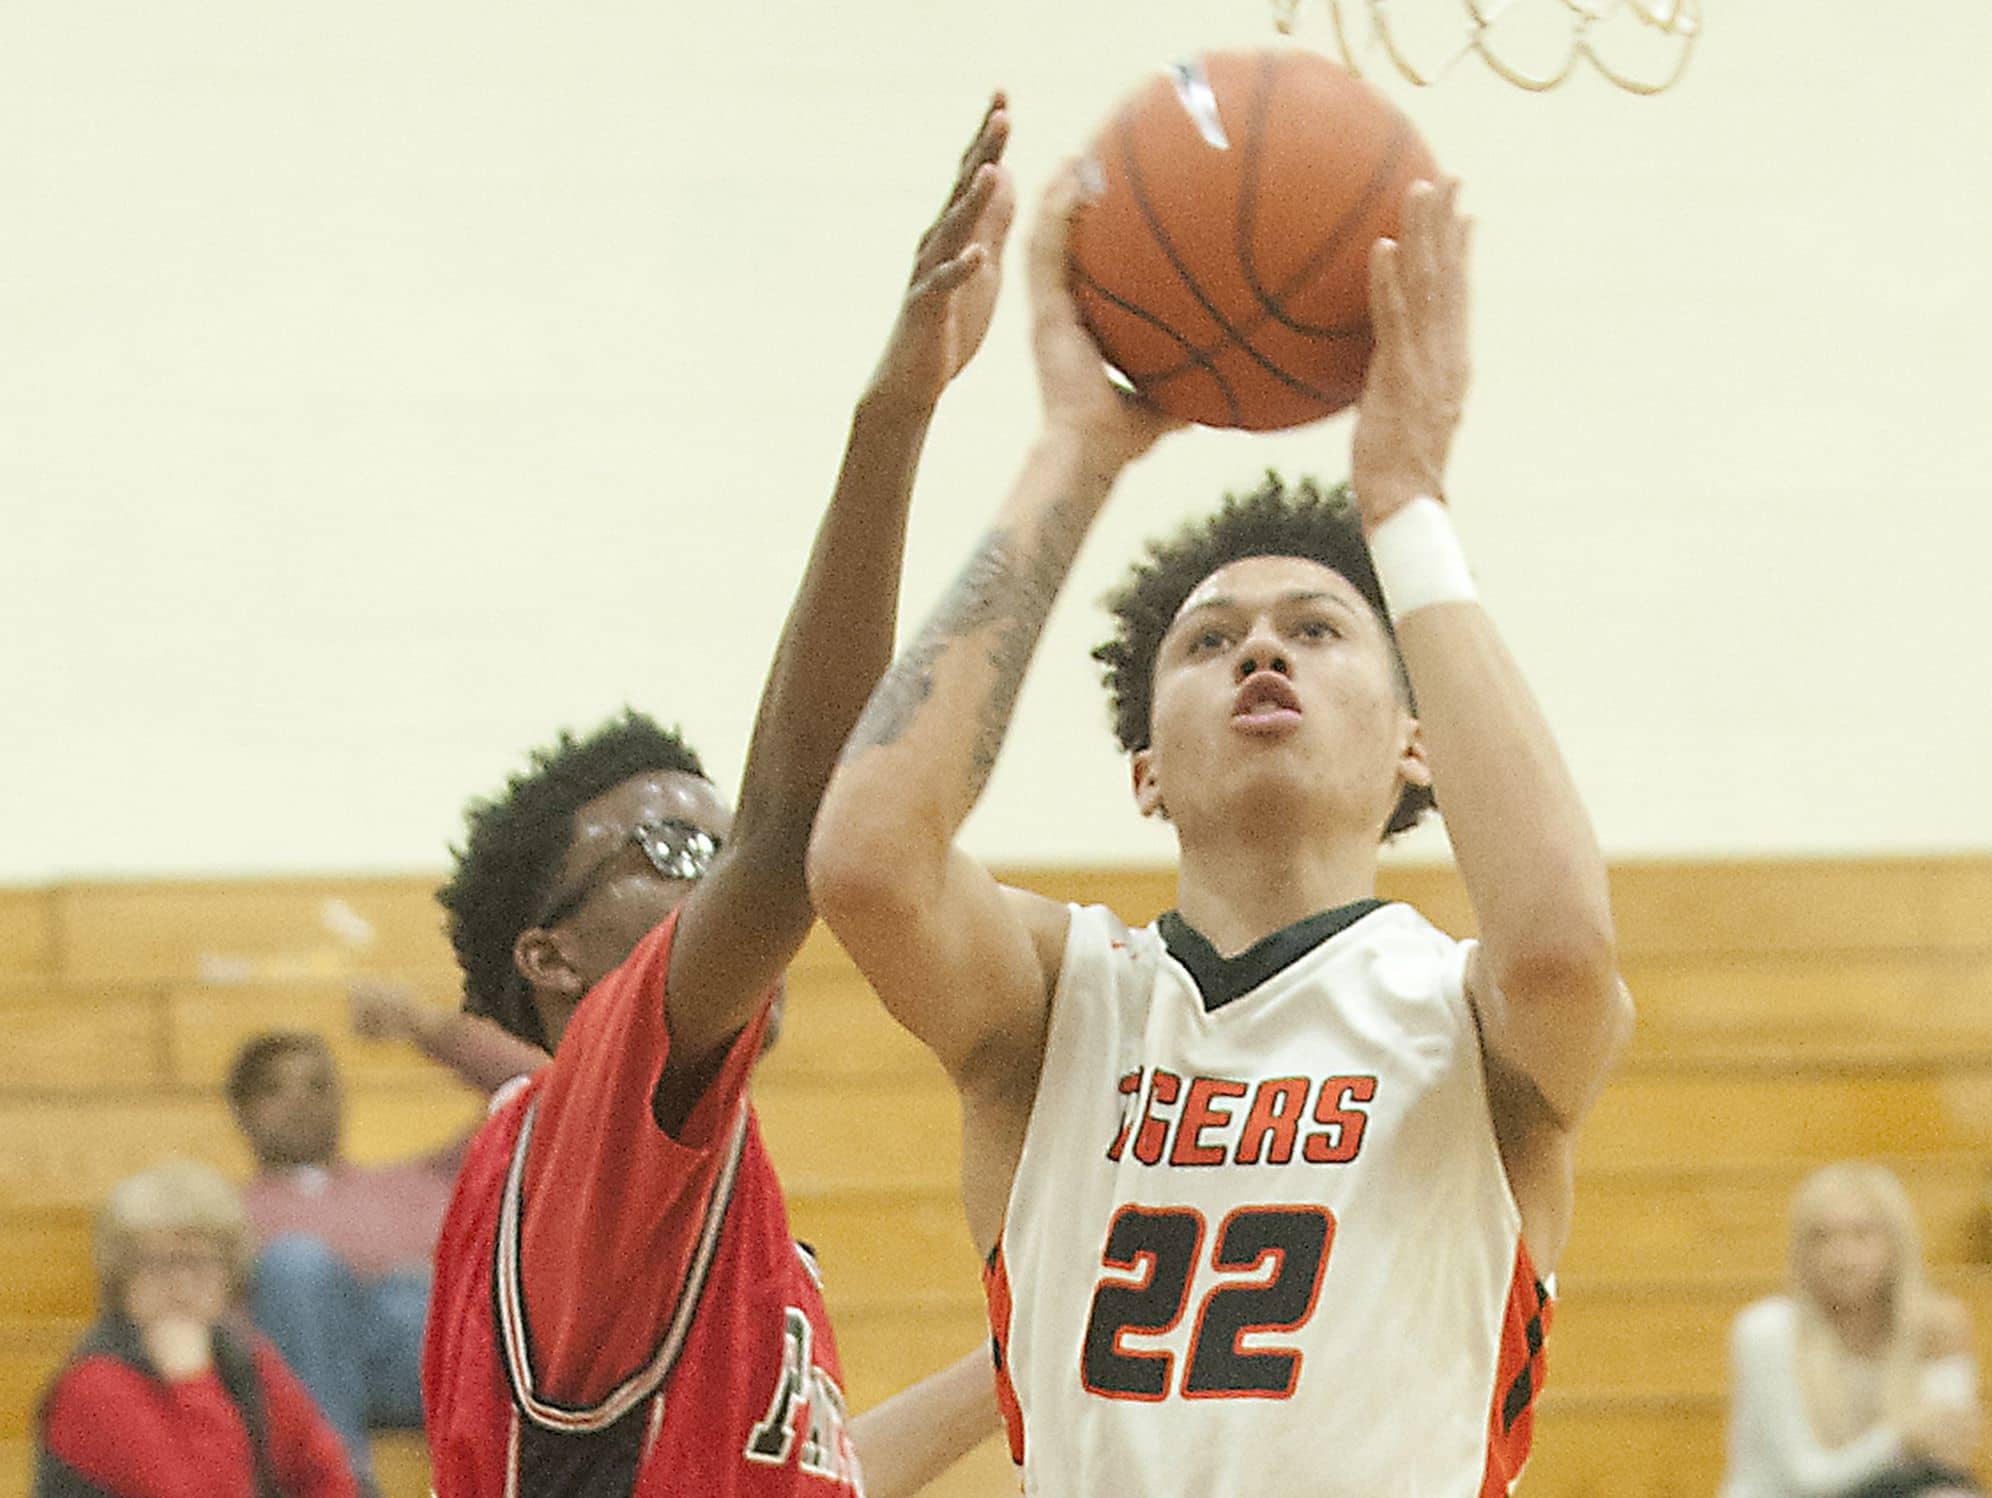 Fern Creek guard-forward Chance Moore puts up a shot over Pleasure Ridge Park center Micah Kinnebrew. Pleasure Ridge Park forward Darius Osborne pressures from behind. 15 February 2017